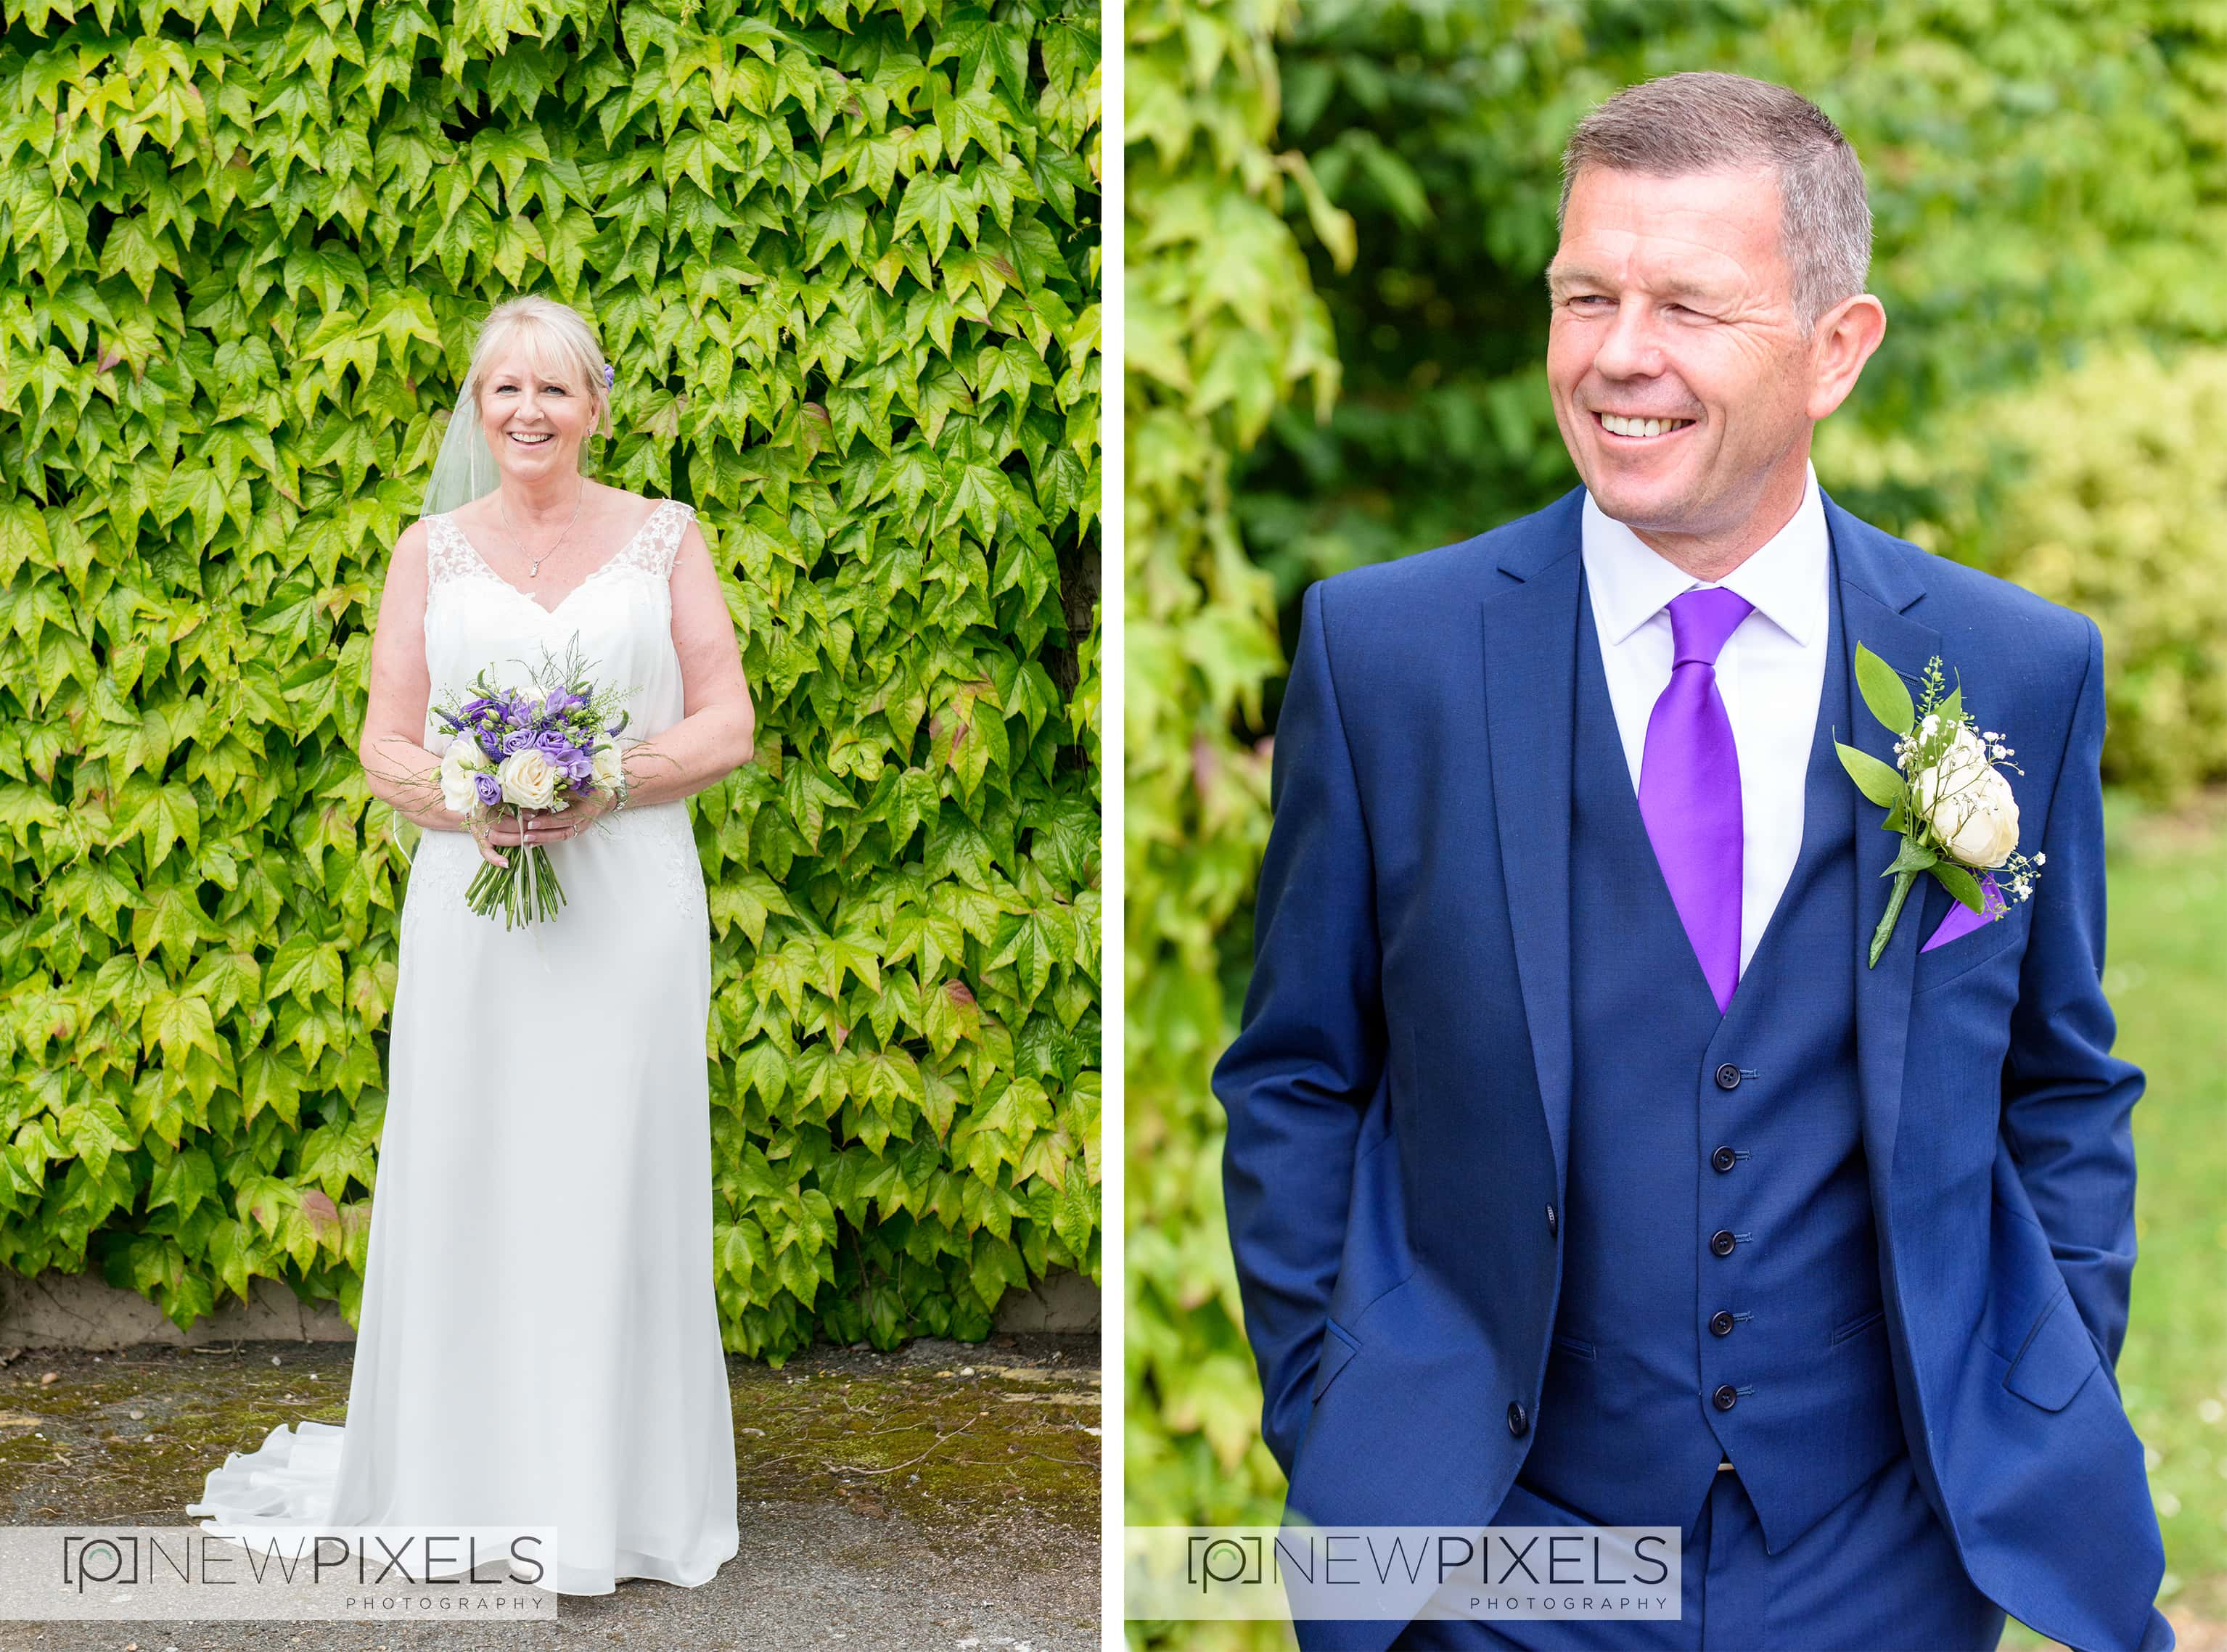 downhall wedding photographer2